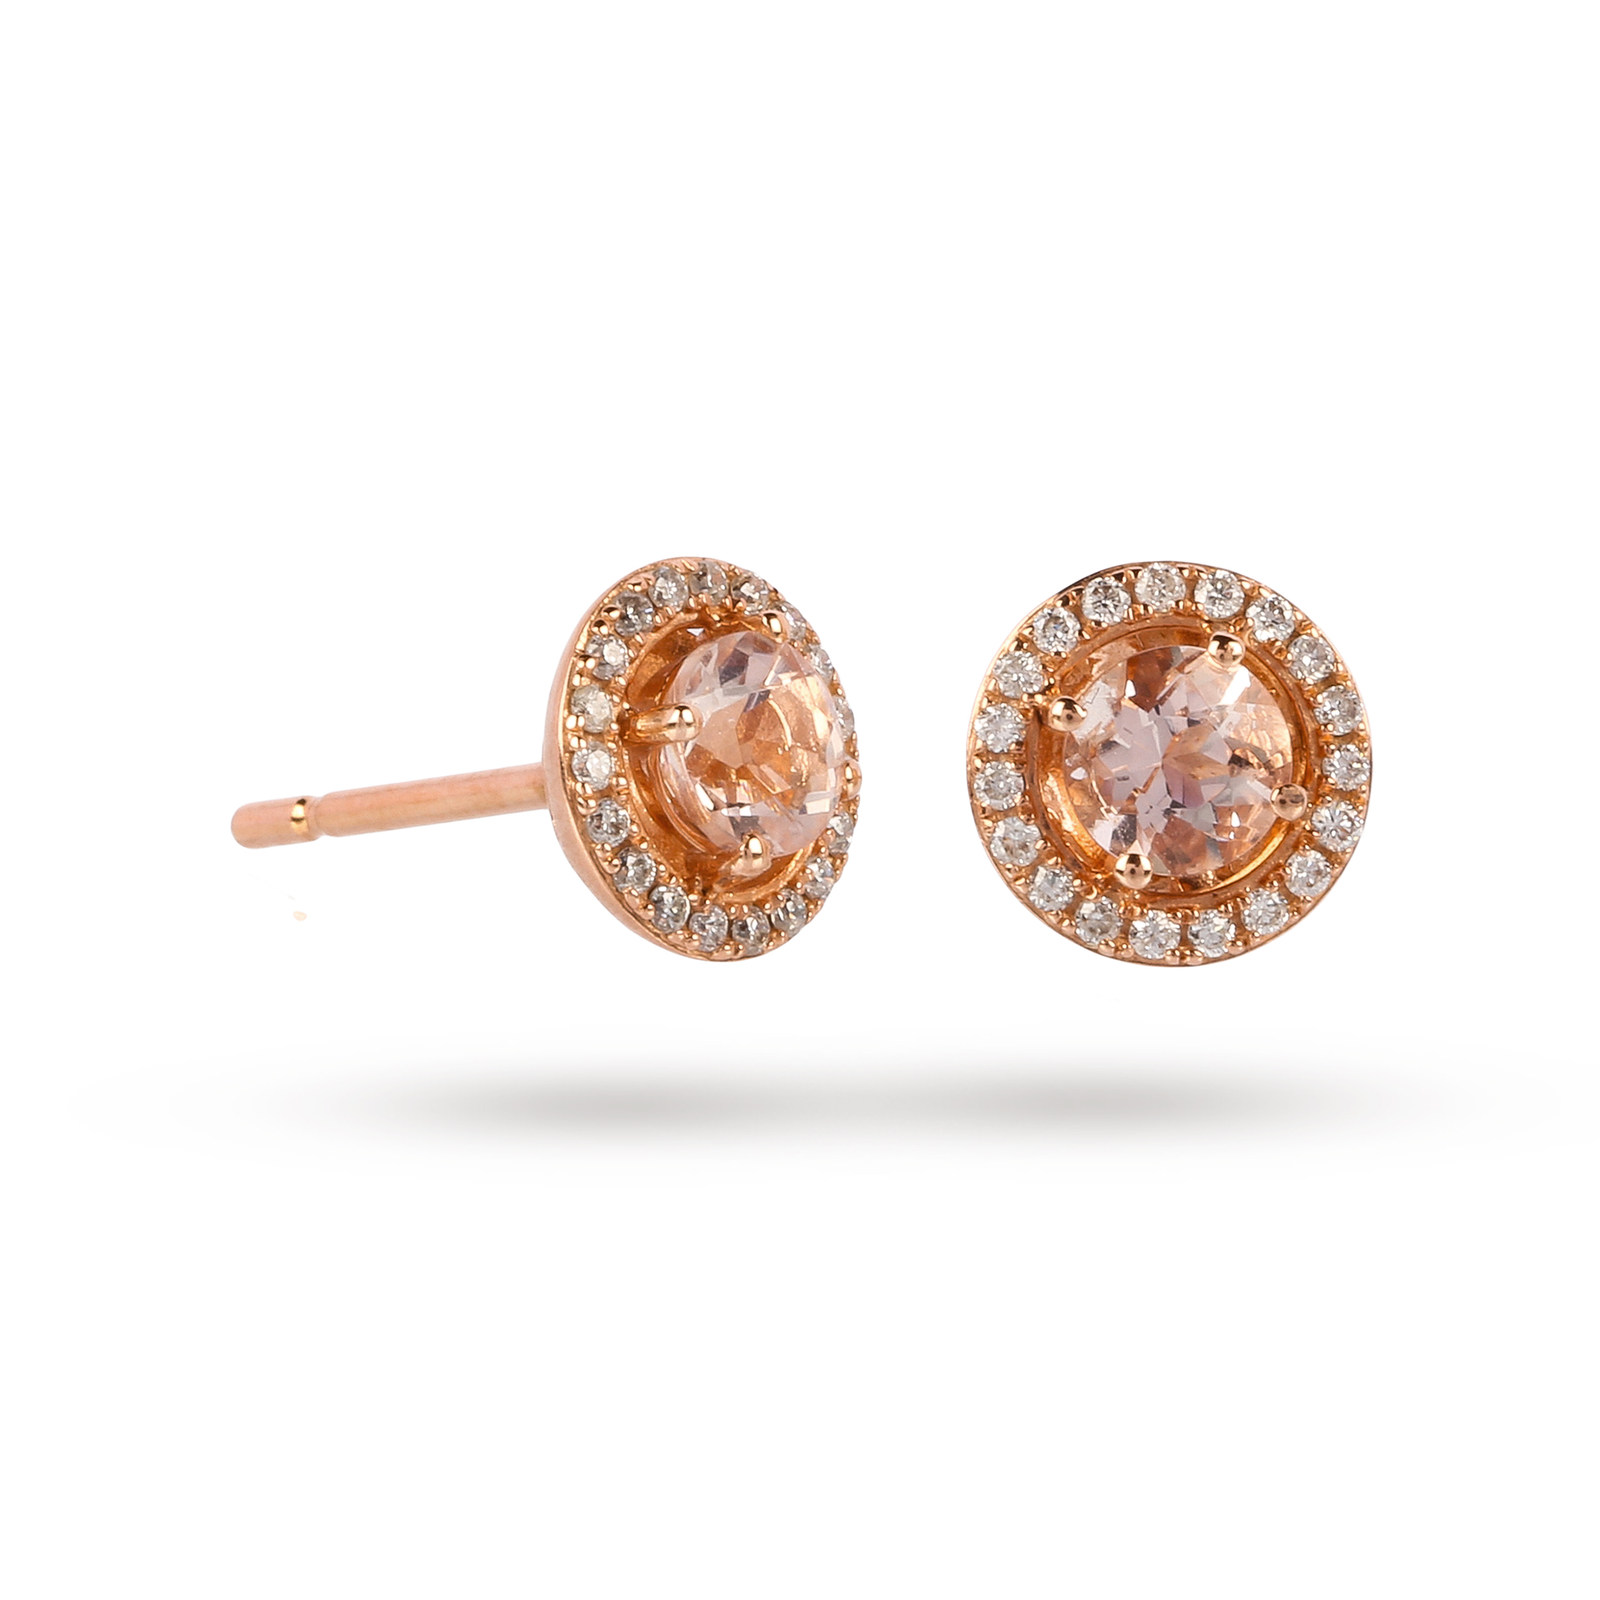 de mandys mrgnt jkt accents with mine diamonds gold gem rnd stud earrings gemstone dmnd diamond morganite products collections bg white